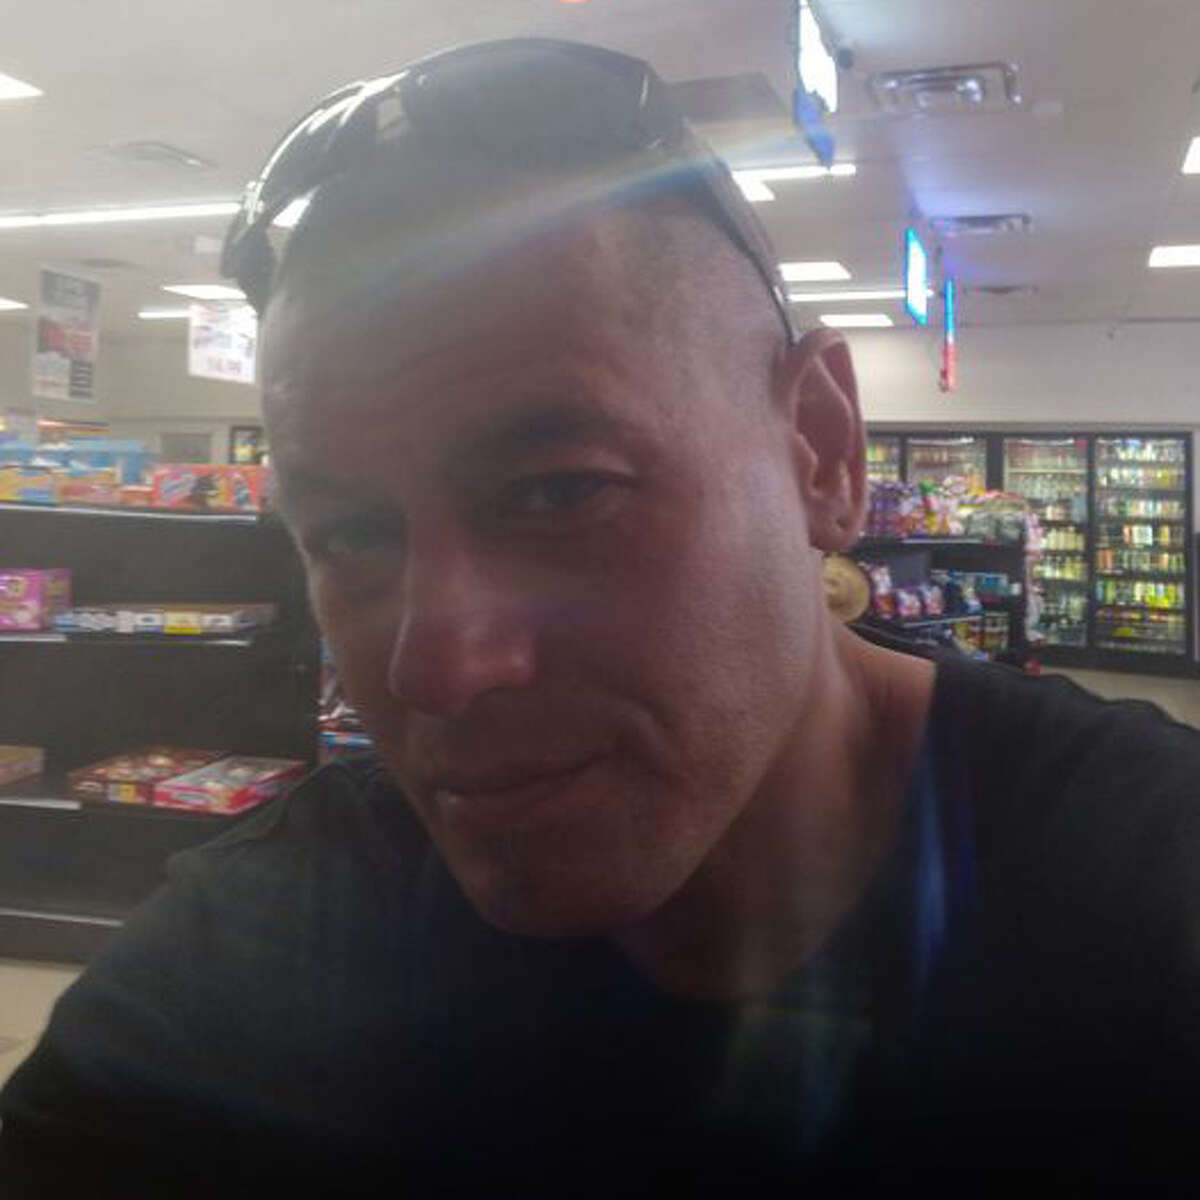 David Luteras' body was found with two others in a dumpster that was set on fire last week in Fort Worth, police said.